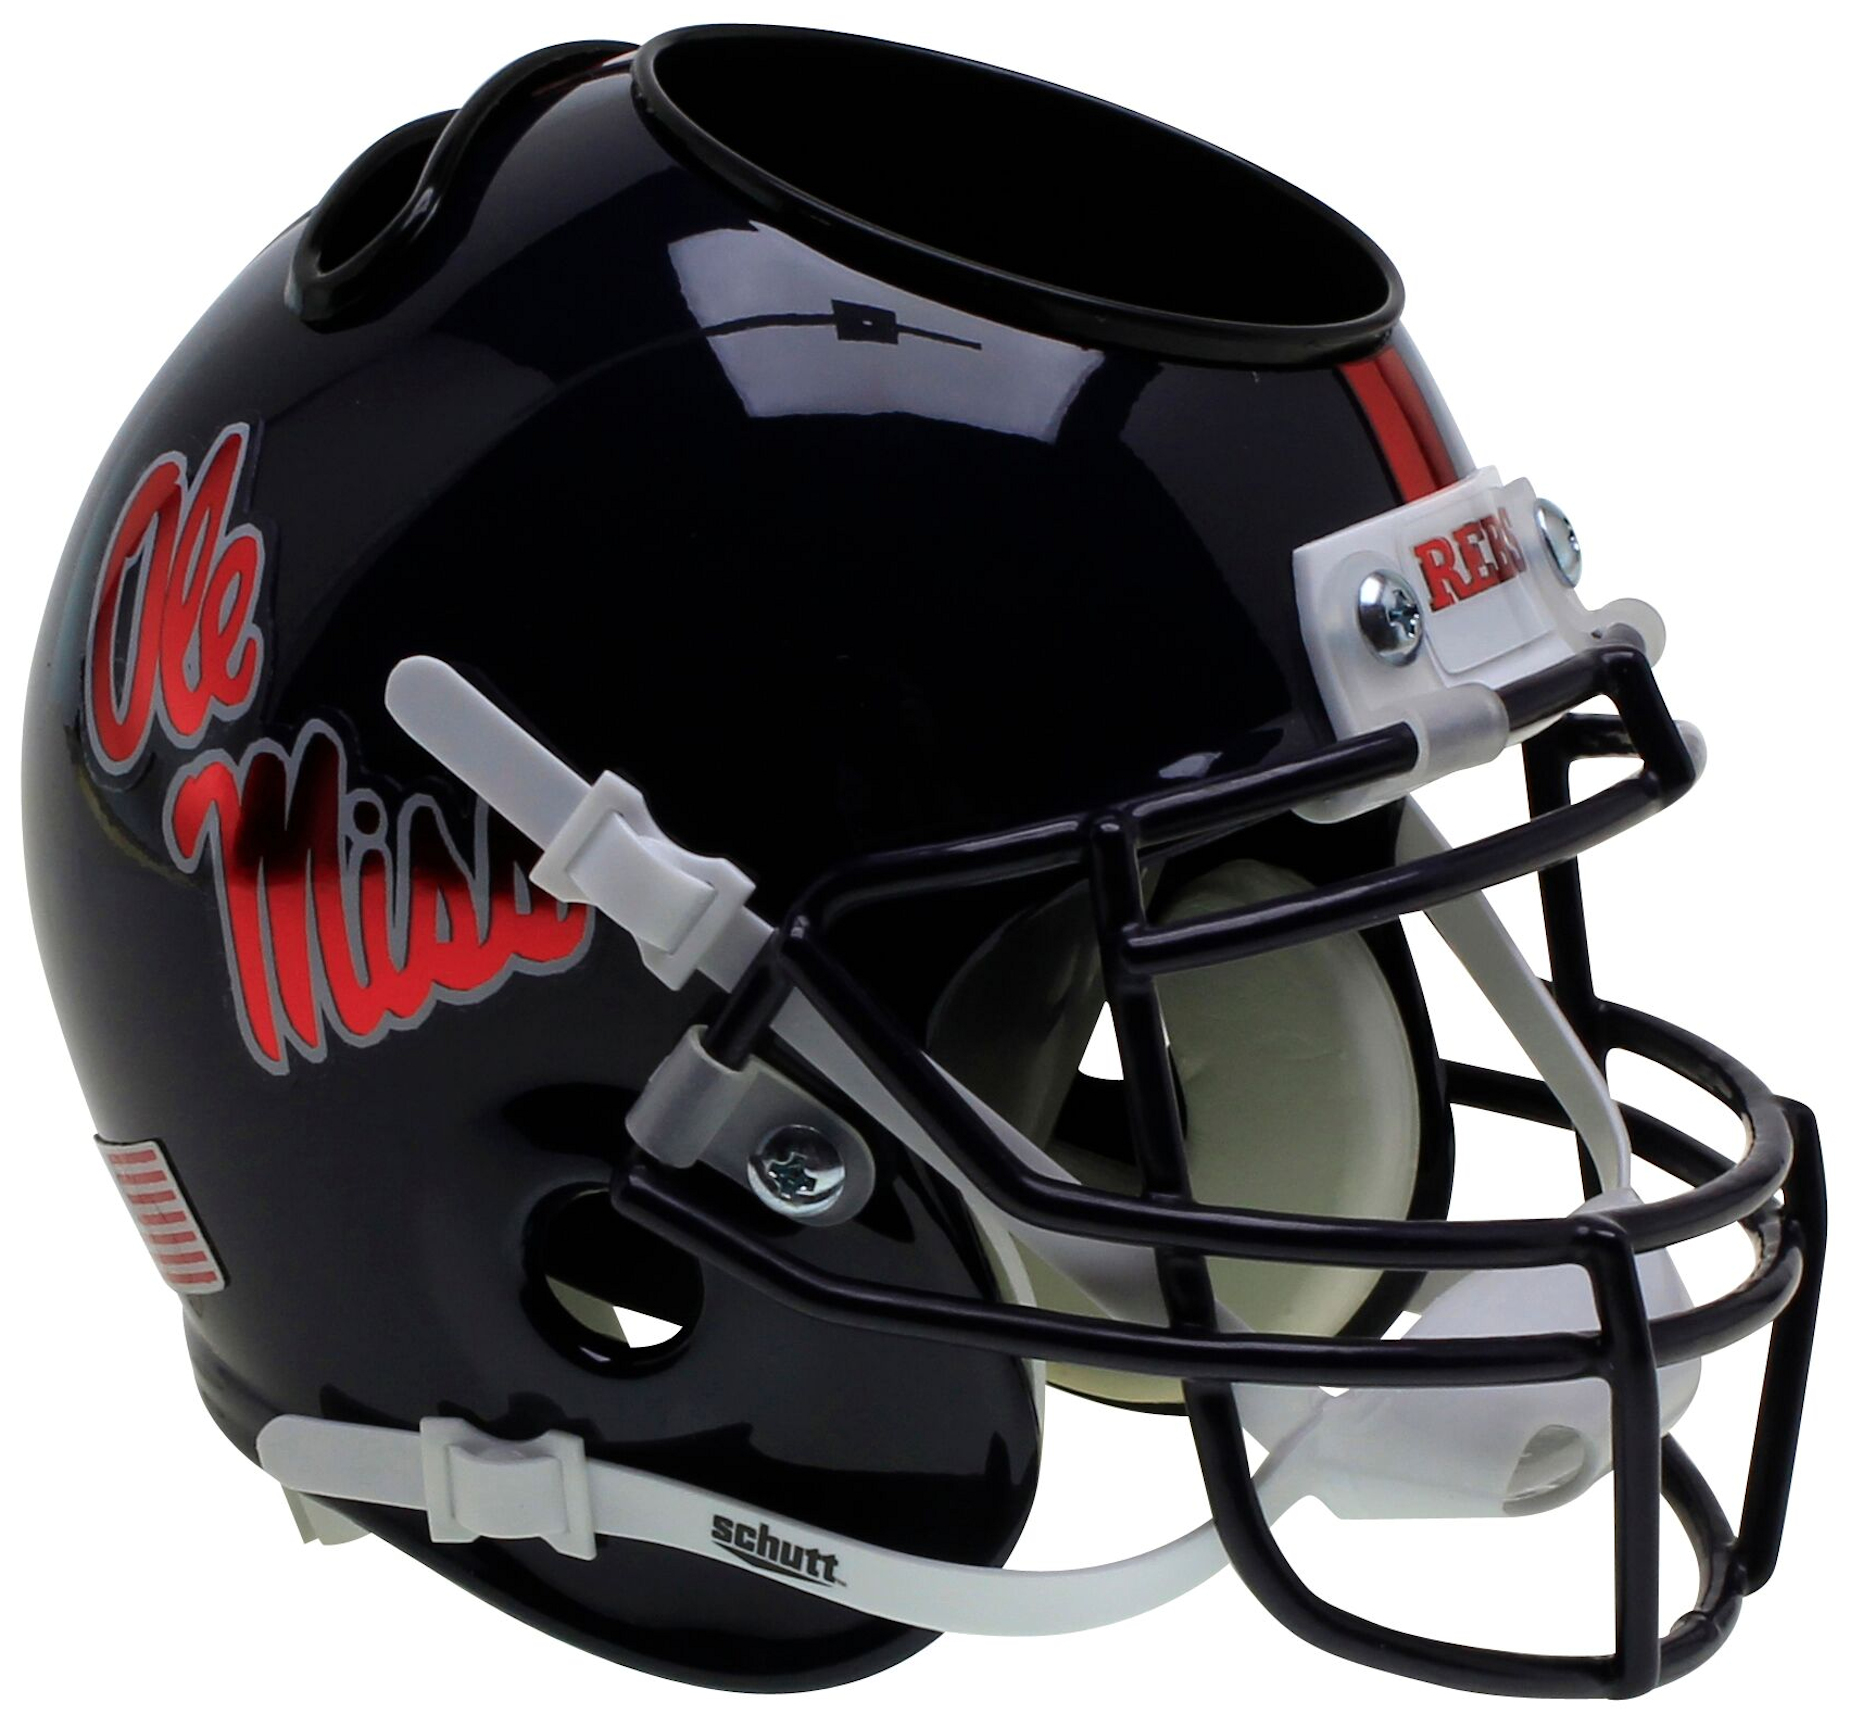 Mississippi (Ole Miss) Rebels Miniature Football Helmet Desk Caddy <B>Chrome Decal</B>